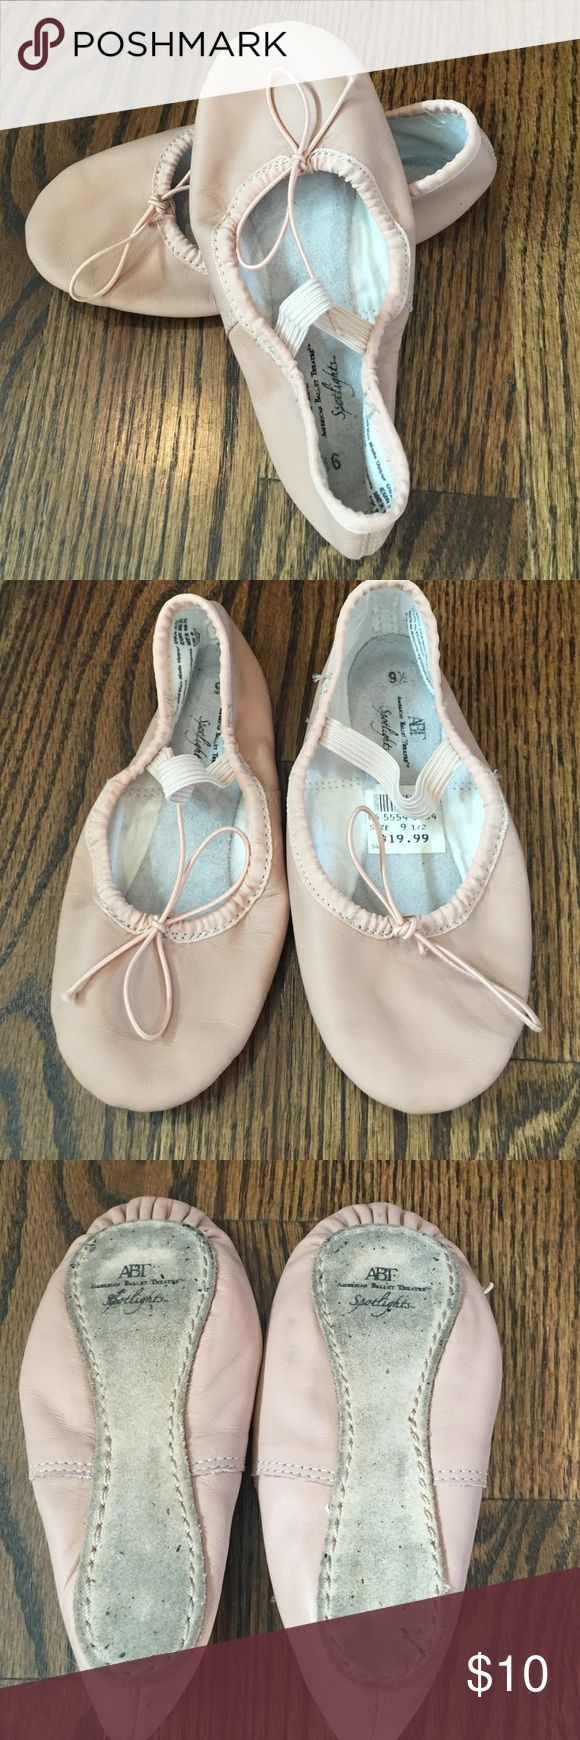 Dusty pink Ballet shoes These shoes are perfect for the twirling little dancer in your house!  Dusty pink in color with elastic closure.  The tag is still intact, but these shoes were worn for one 8 week session of ballet.  The primary wear is to the soles and insoles as shown in the pics 3&4.  The brand reads American Ballet Theatre Spotlights.  They were purchased at Payless Shoe Source.  No rips or scuffs.  Size 9 1/2. American Ballet Theatre Shoes